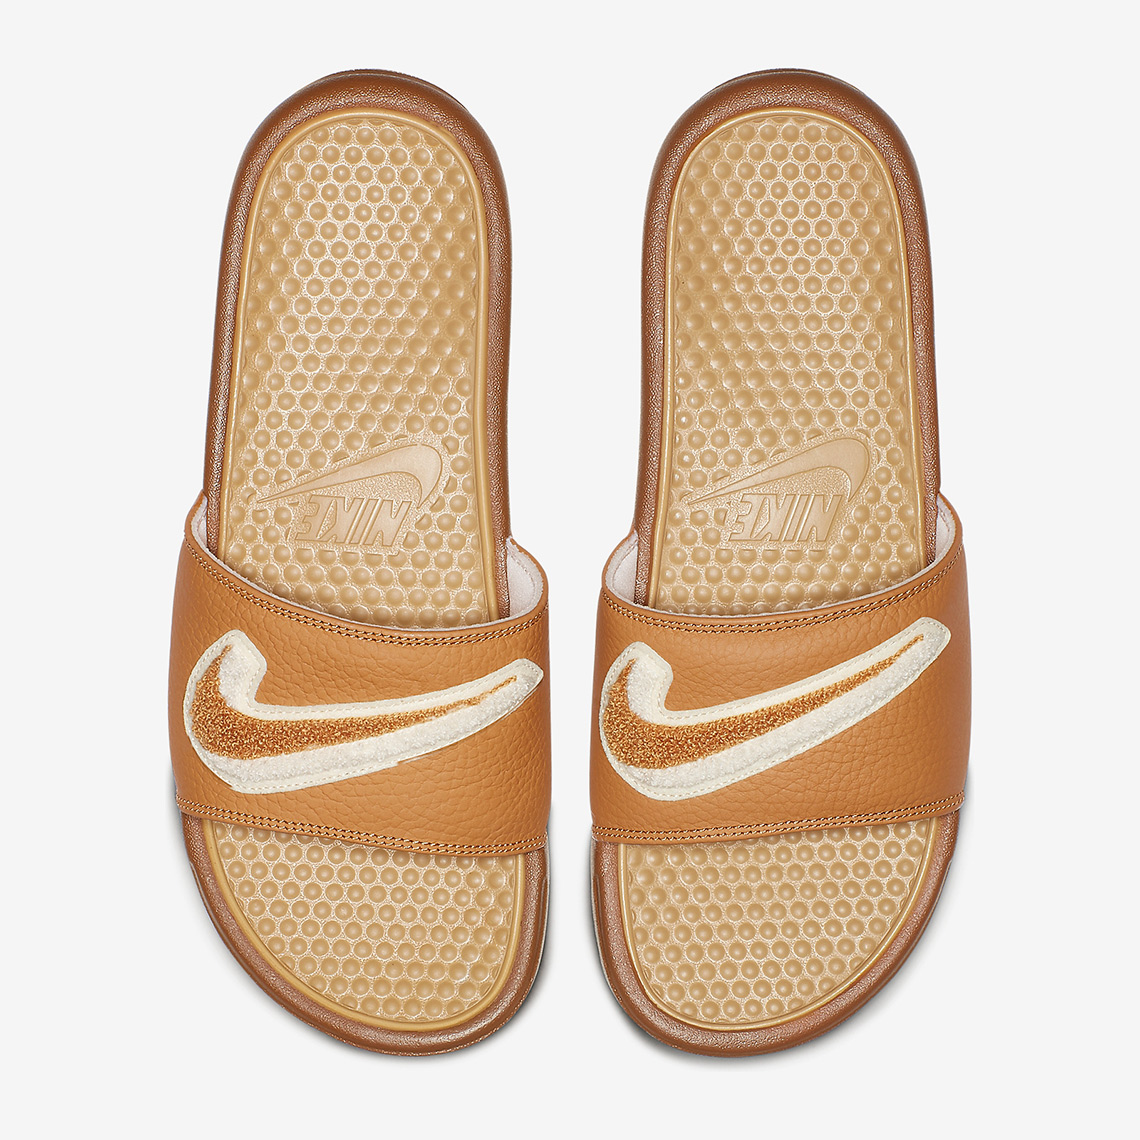 a3406ceed475 Nike Benassi JDI Available Now on Nike.com  45. Color  Black Summit White